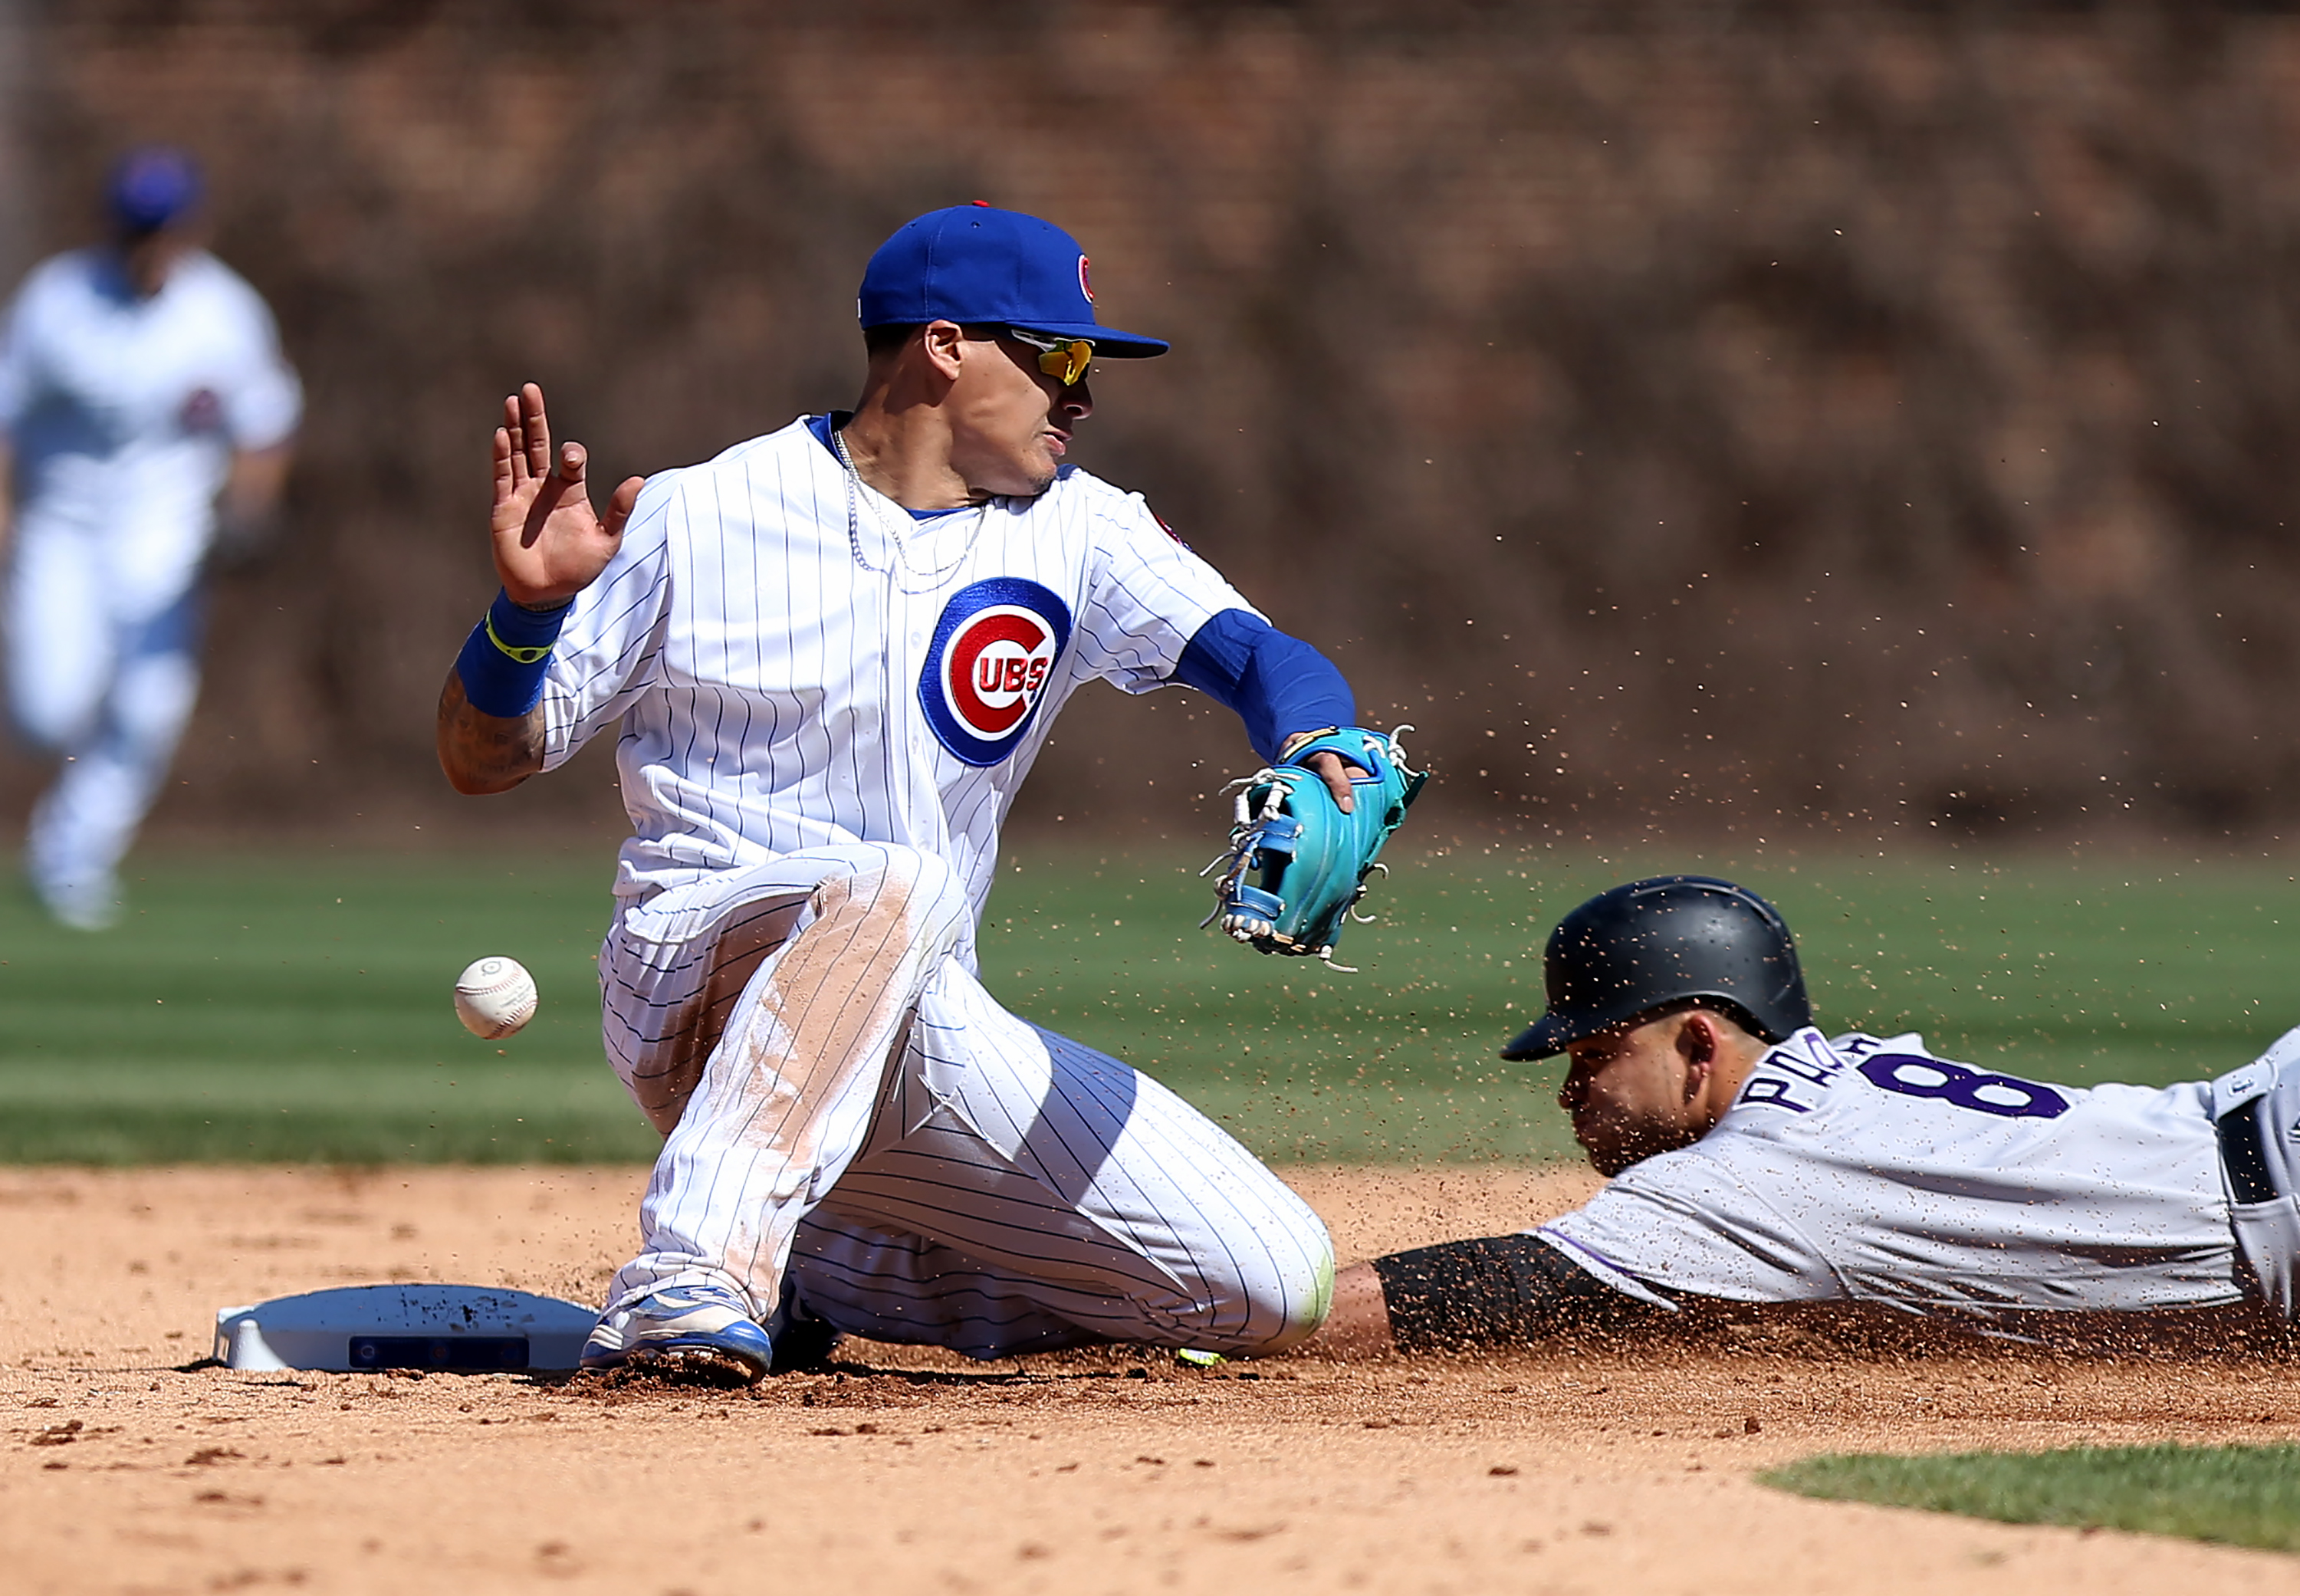 Gerardo Parra #8 of the Colorado Rockies slides into second past Javier Baez #9 of the Chicago Cubs in the seventh inning at Wrigley Field on April 16, 2016 in Chicago, Illinois. (Photo by Dylan Buell/Getty Images)